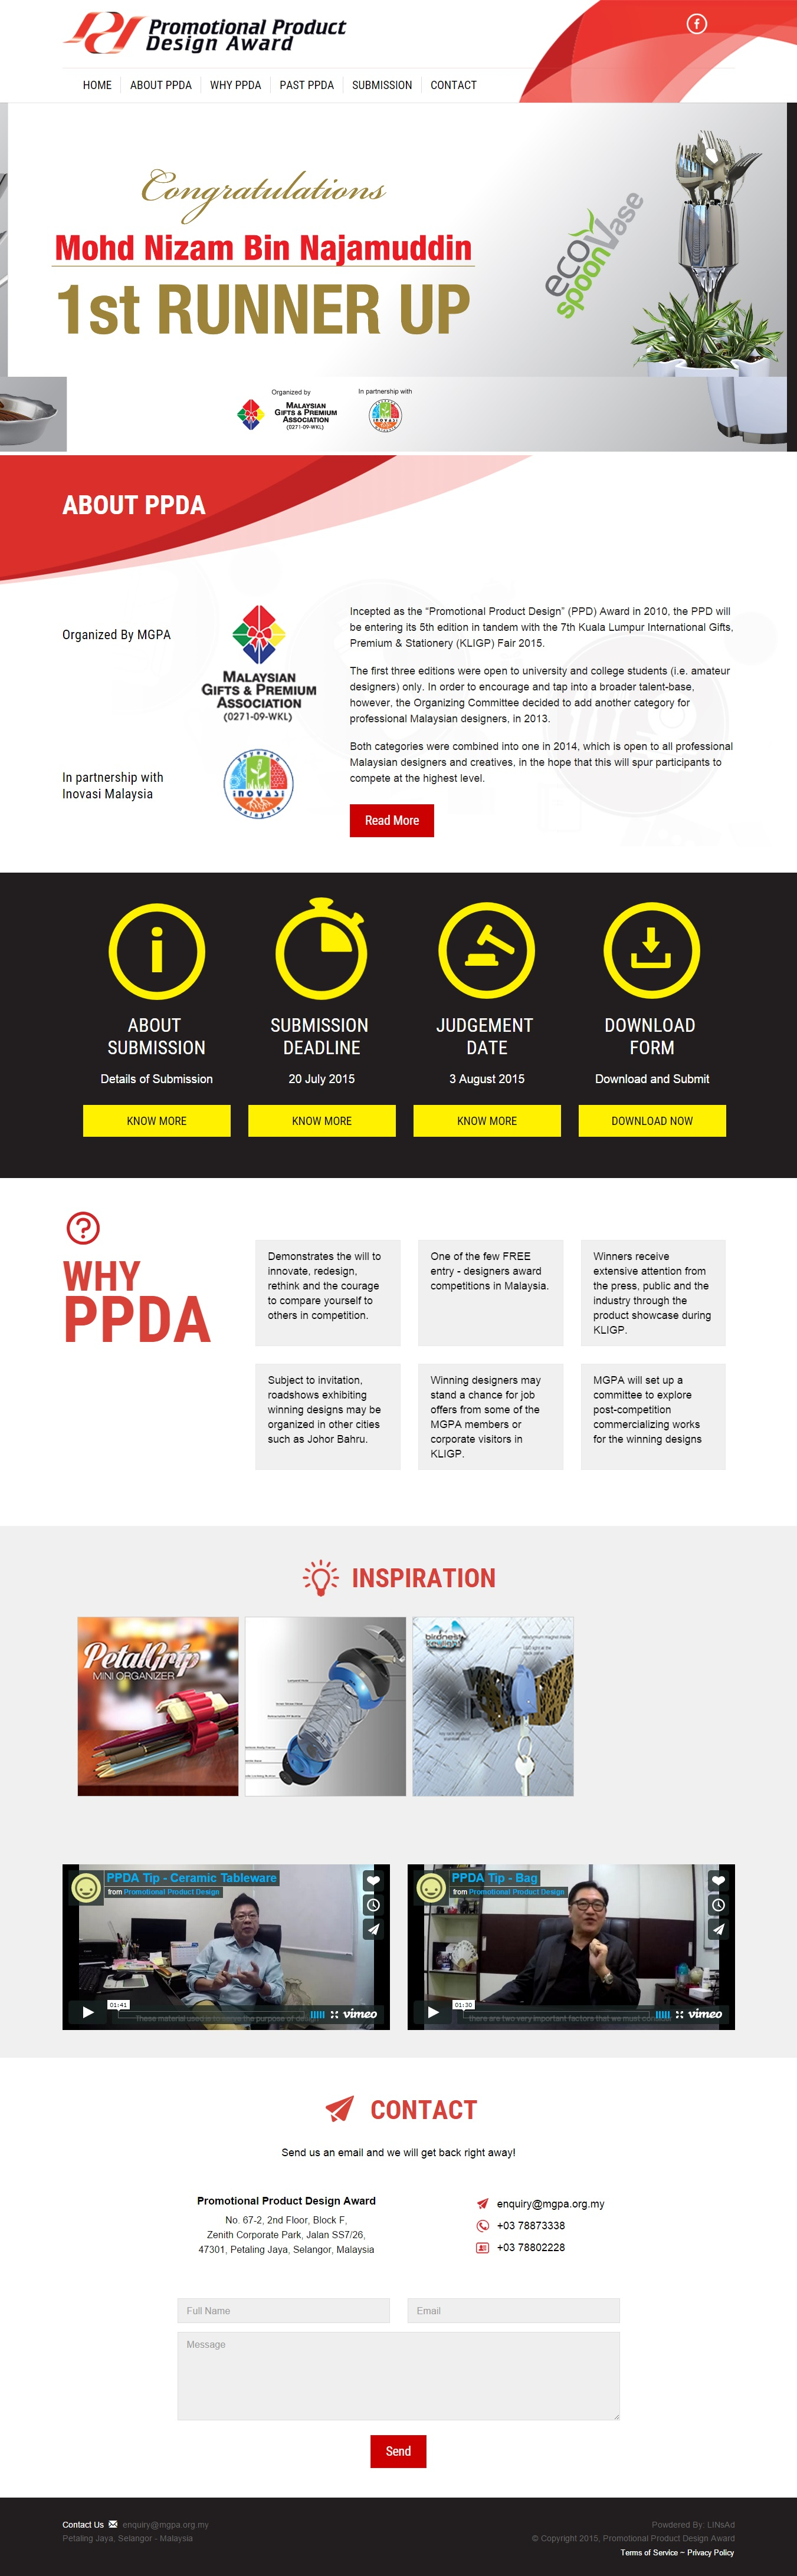 PPDA - Website Design